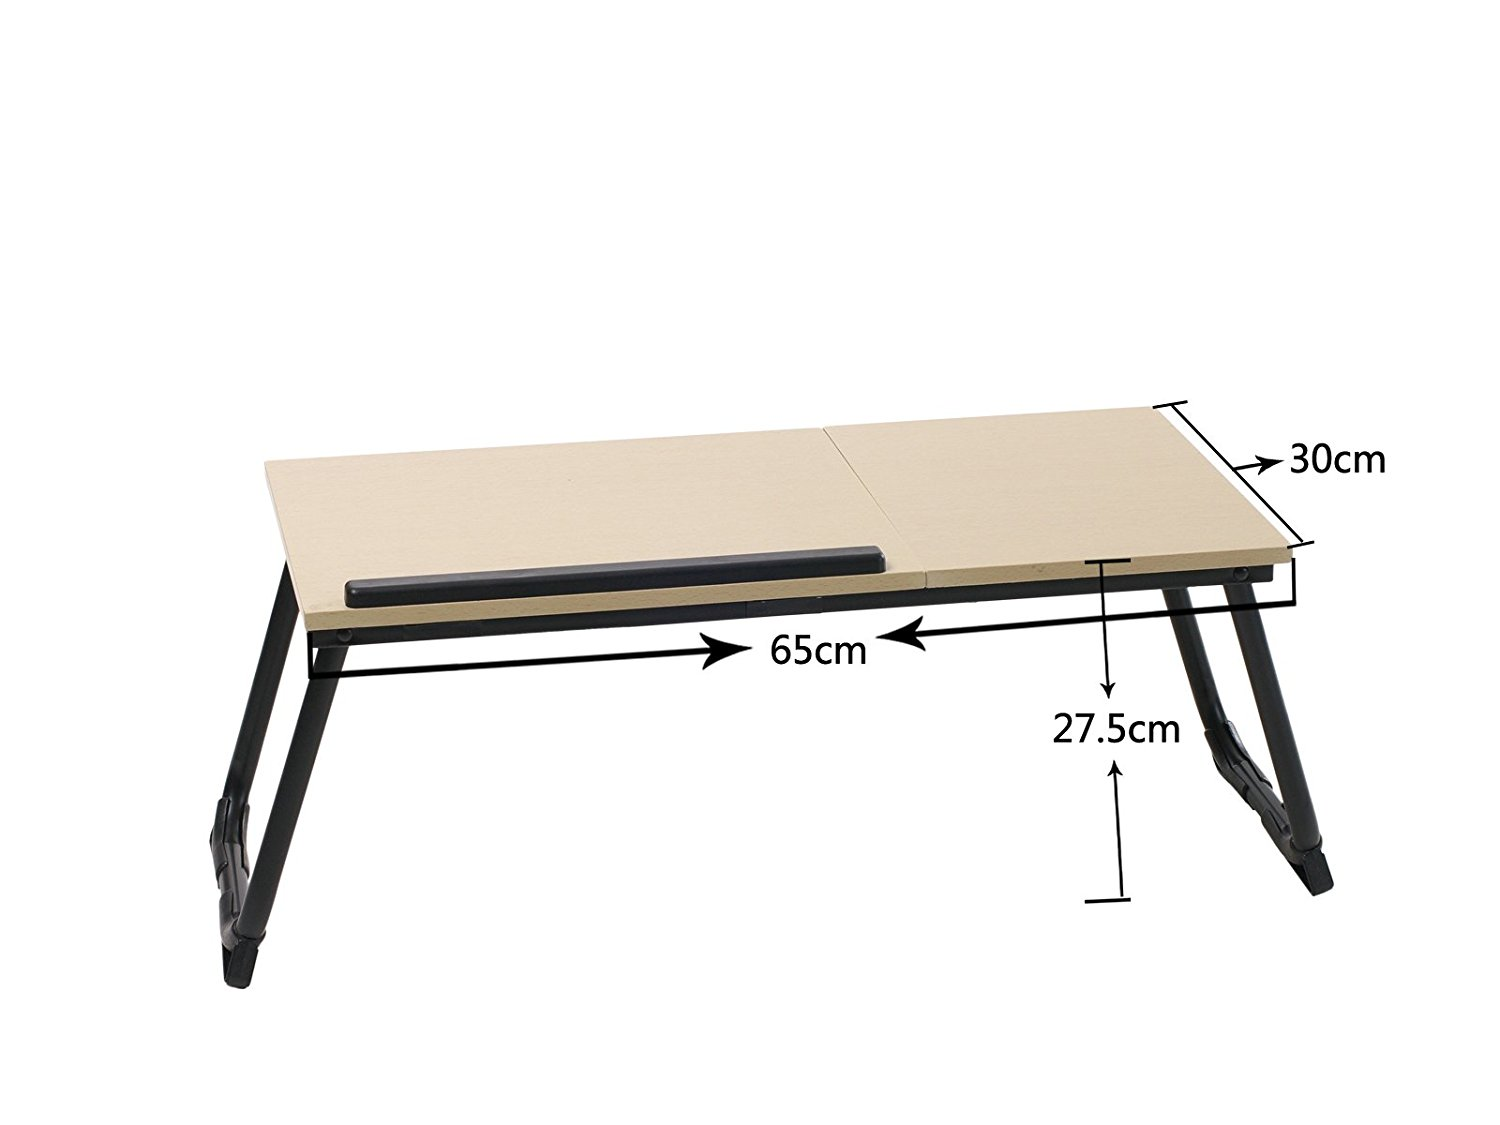 accessories amazon homcom electronics b ca laptop computer lapdesks bamboo for desk bed adjustable netbook